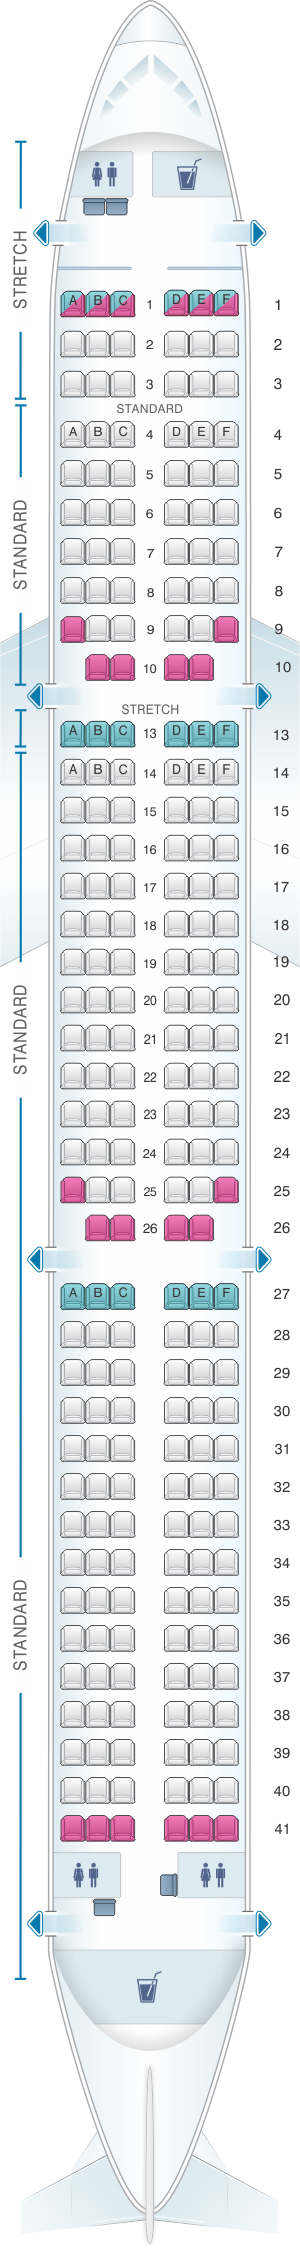 Frontier Airlines Seating Chart Airbus A321 In 2020 Alaska Airlines Kingfisher Airlines American Airlines